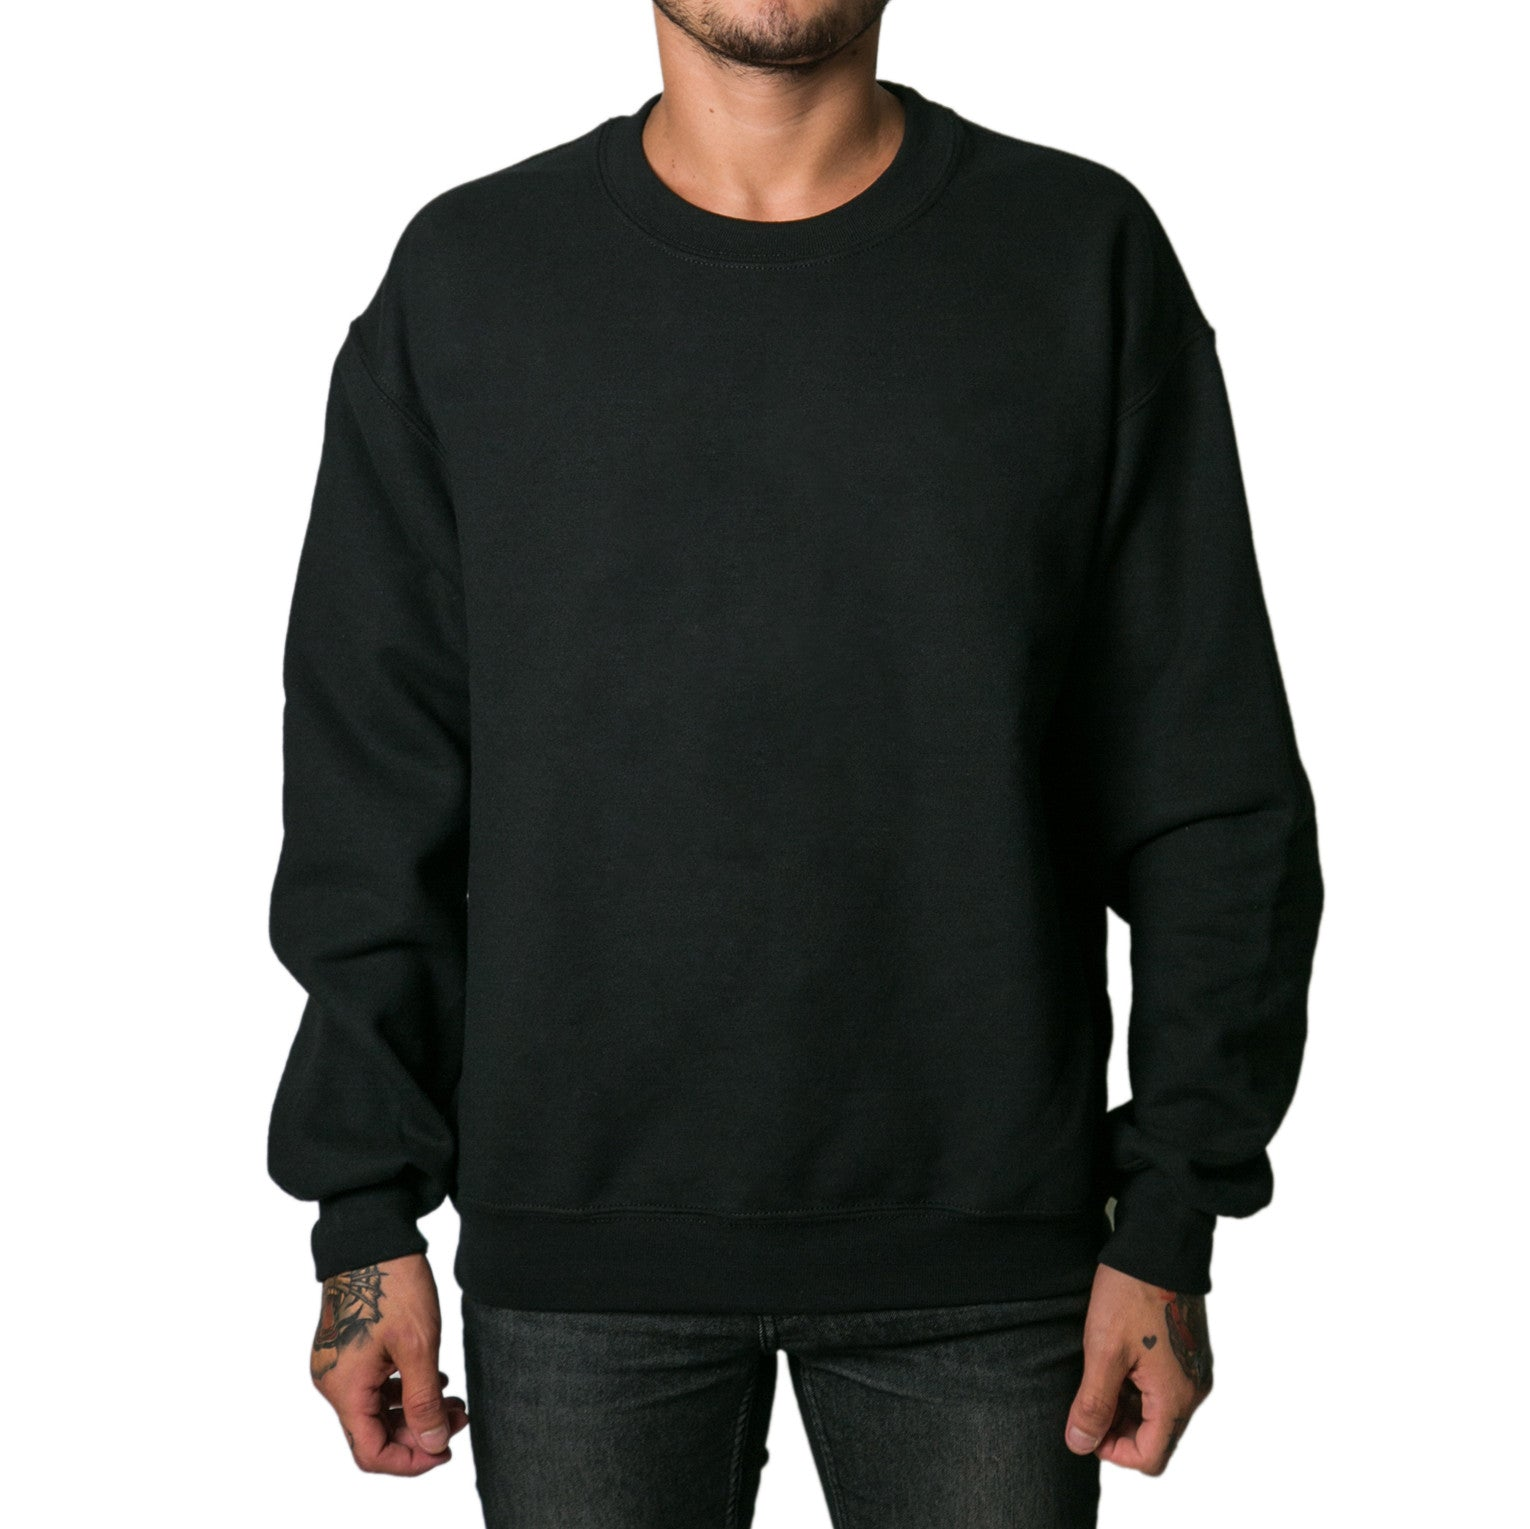 Techno 00 Sweatshirt - Sweatshirt by Fol The Brand